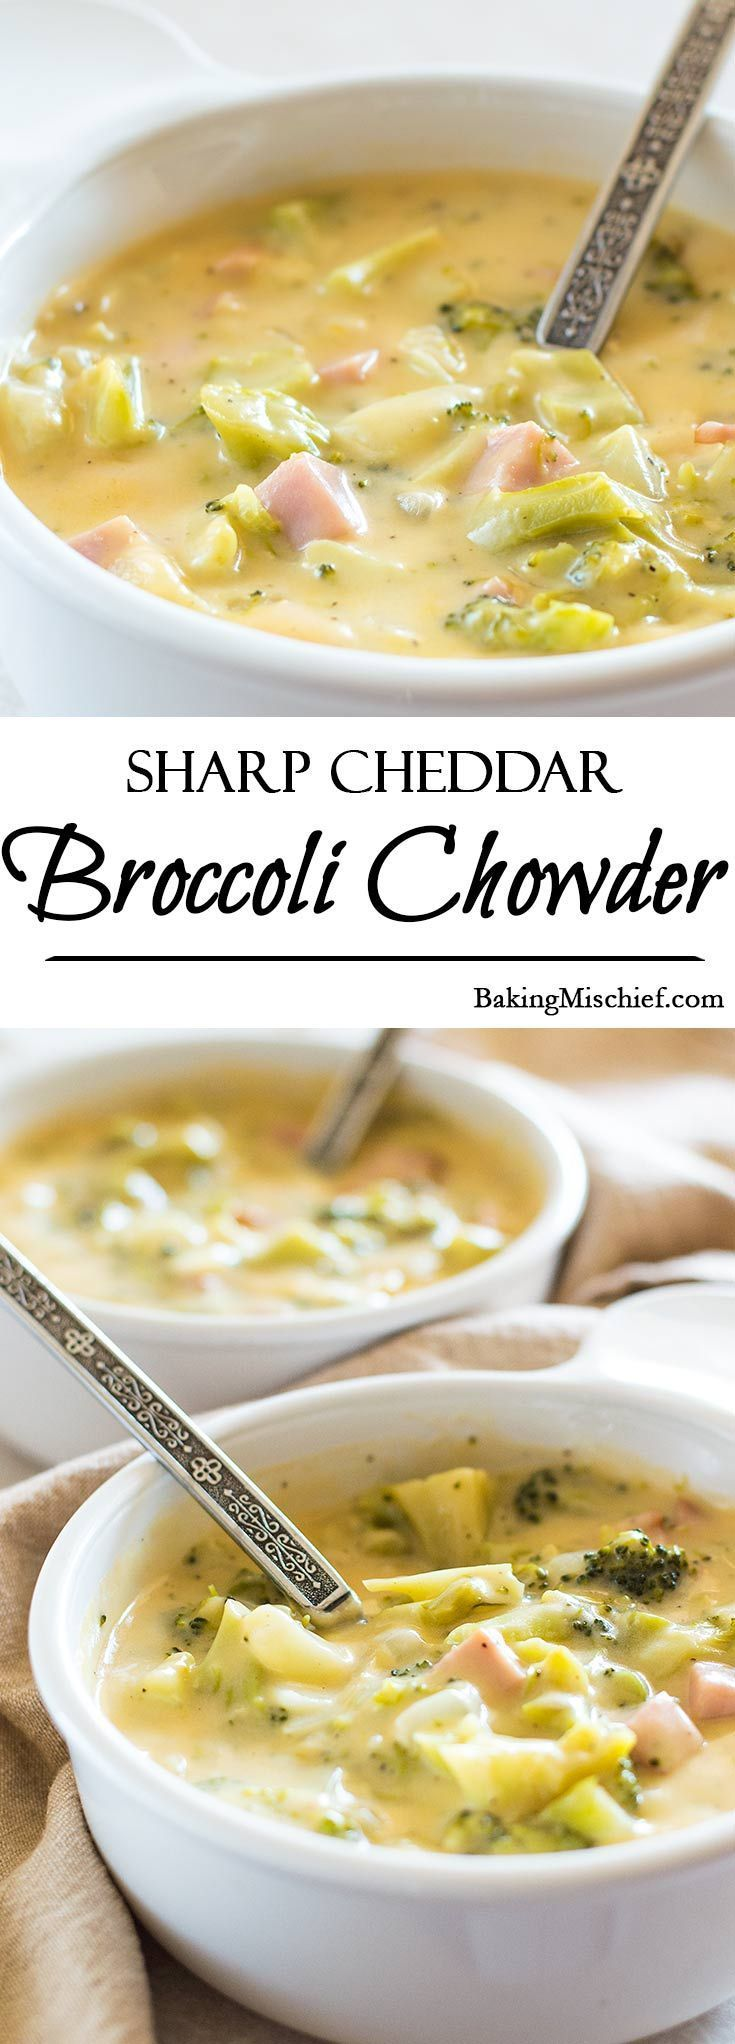 Sharp Cheddar Broccoli and Ham Chowder - Broccoli and ham chowder made with sharp and delicious cheddar cheese. A perfect and easy weeknight dinner for those nights when cheese is a necessity. Recipe includes nutritional information, make-ahead and freezer instructions. From BakingMischief.com